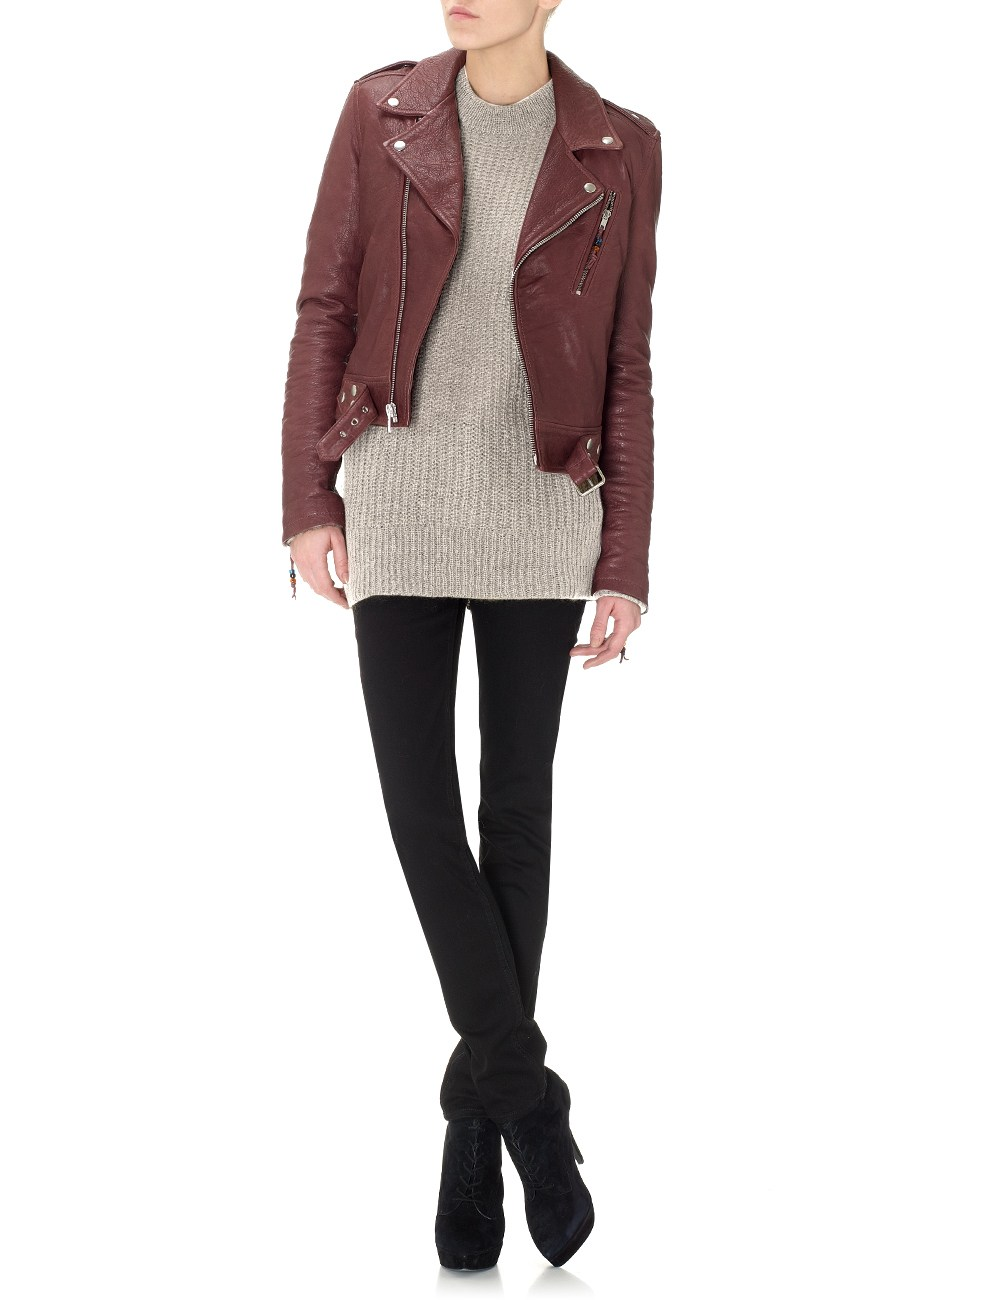 Blk Dnm Cropped Leather Jacket In Purple Burgundy Lyst